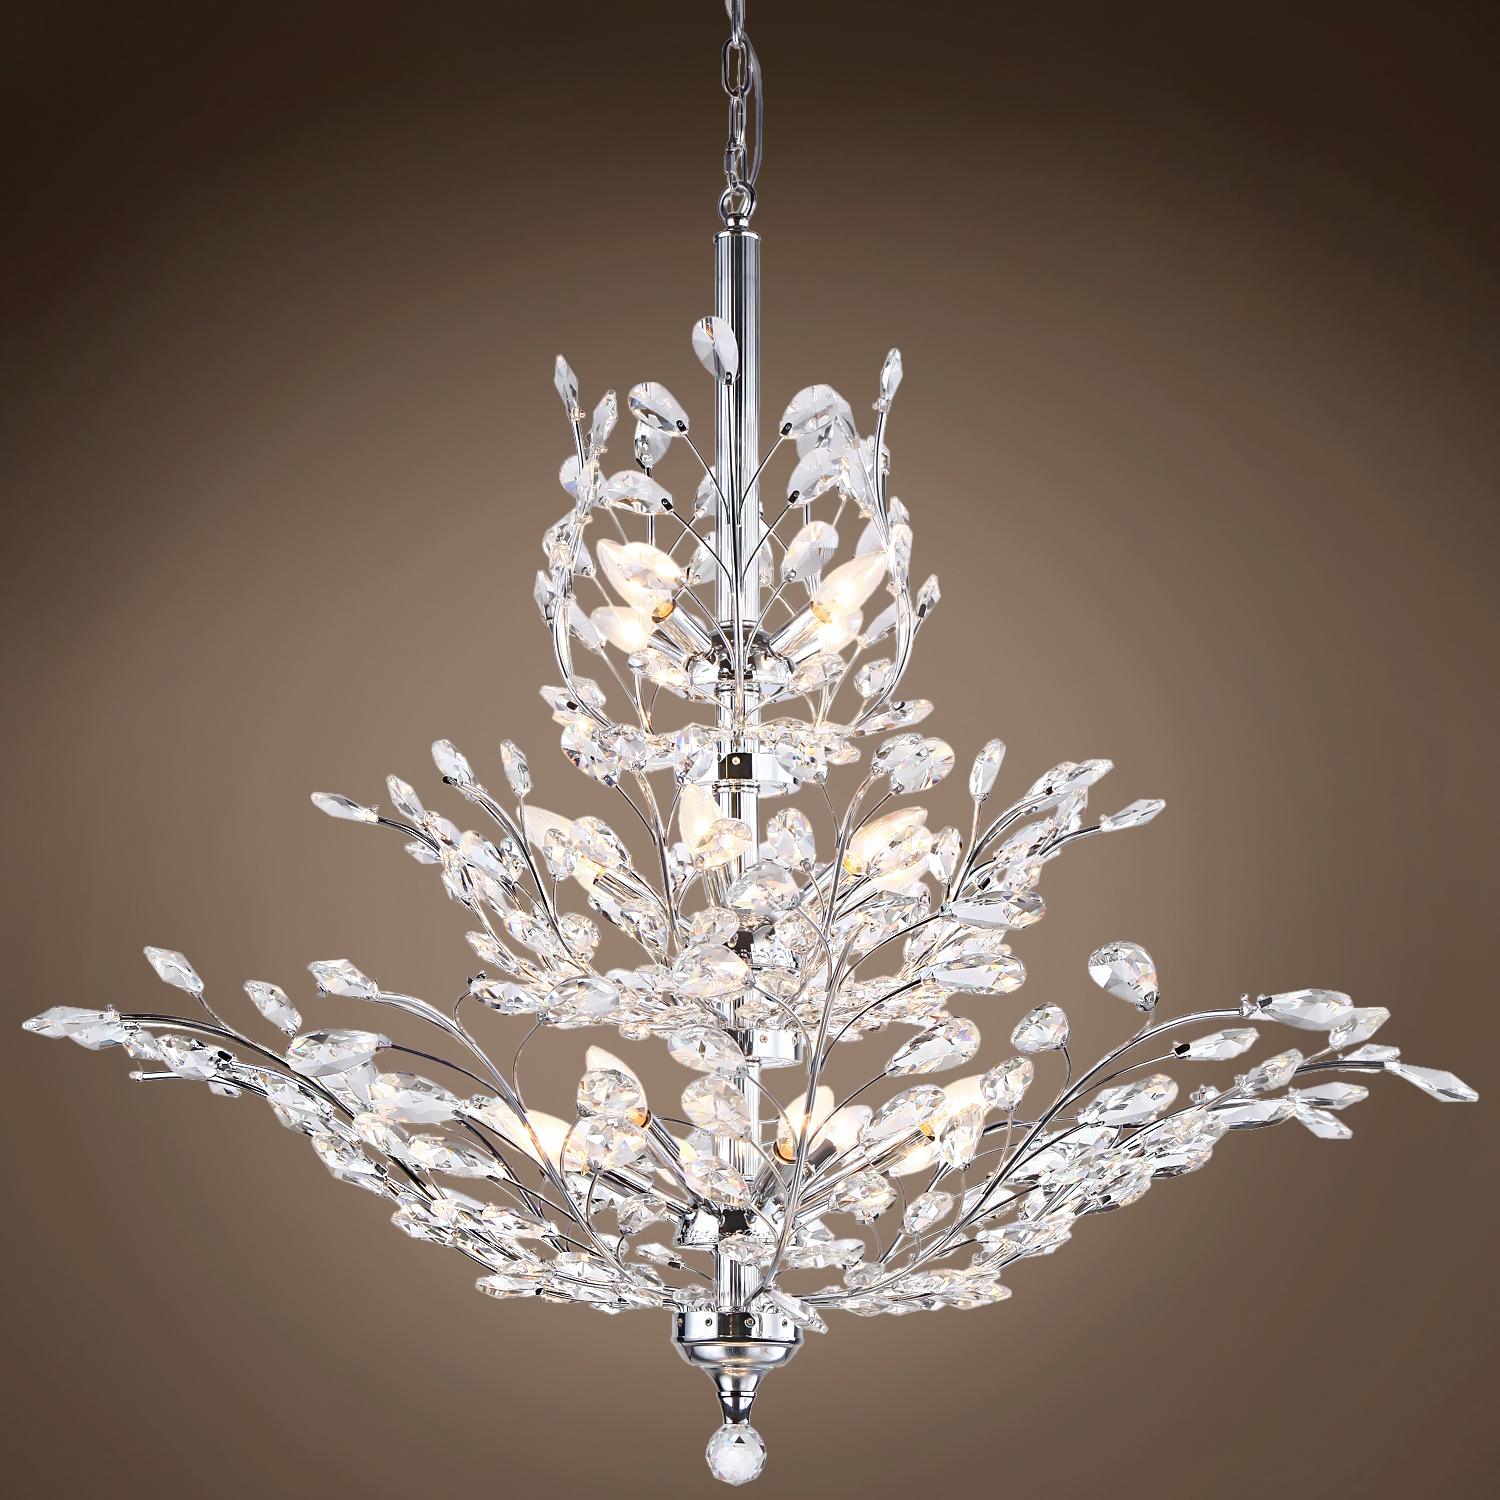 Joshua Marshal 700109 Branch Of Light 13 Light Chrome Chandelier Throughout Crystal Branch Chandelier (Image 9 of 15)